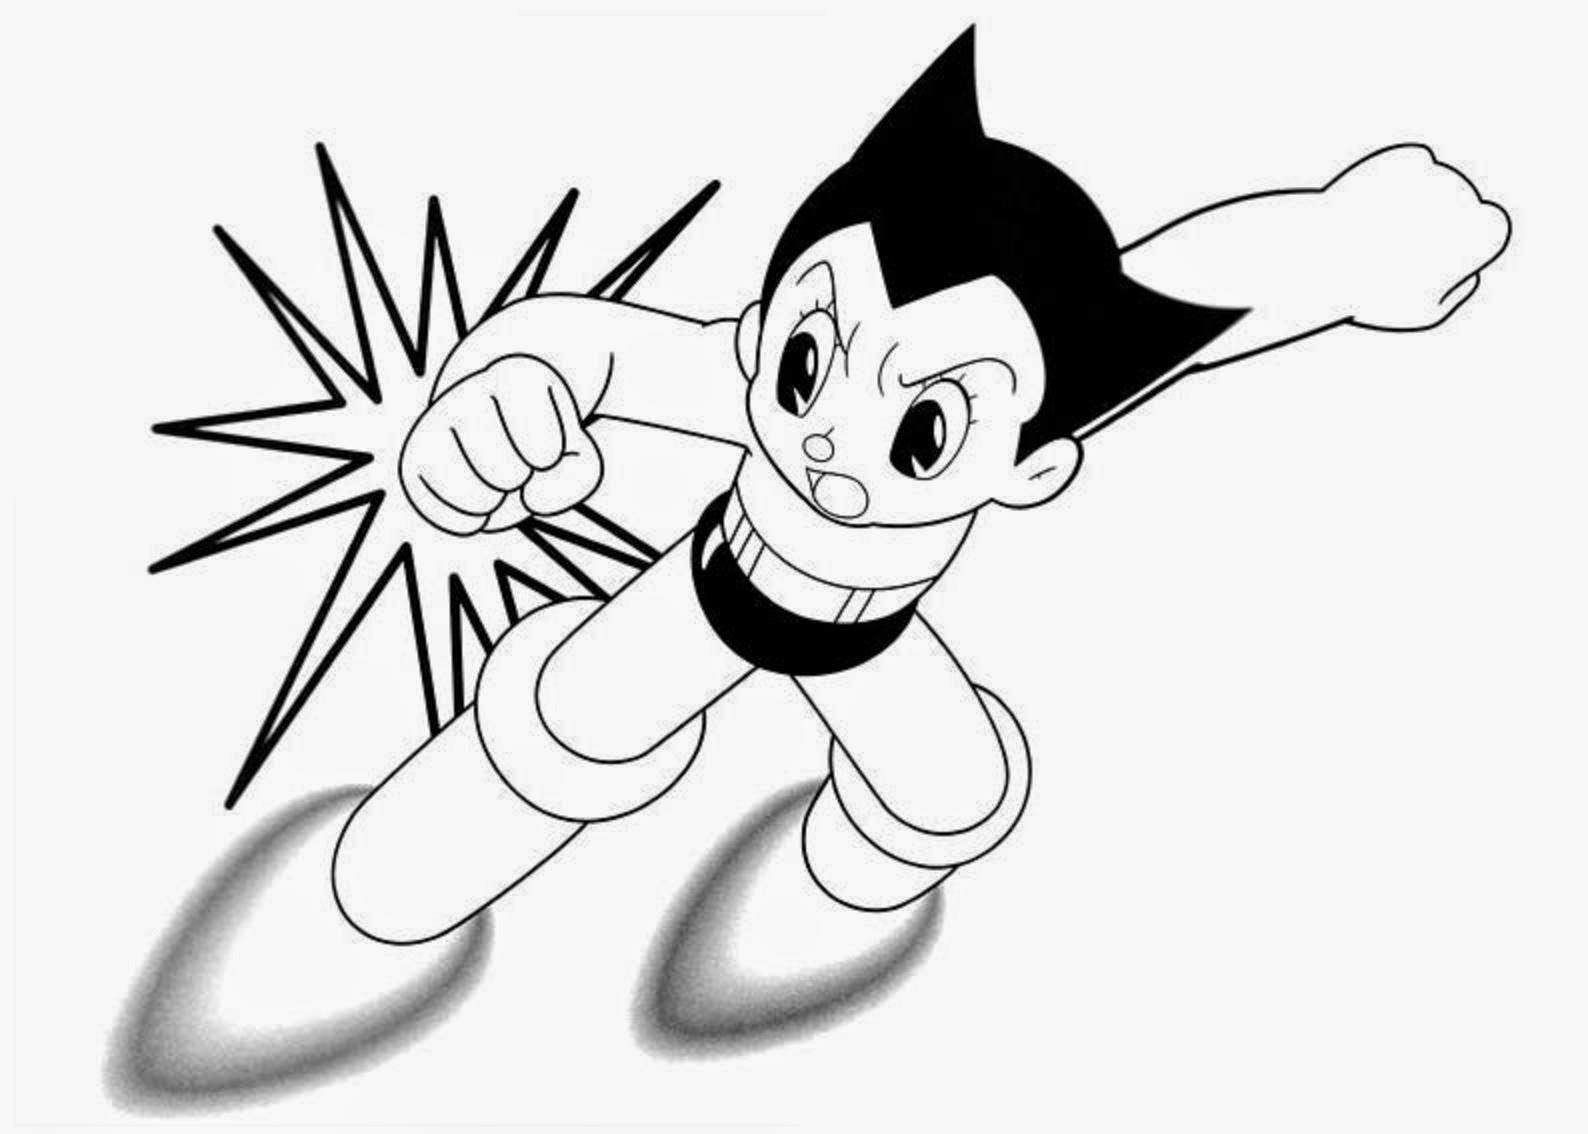 Astro boy coloring drawing free wallpaper anggela for Astro boy coloring pages free